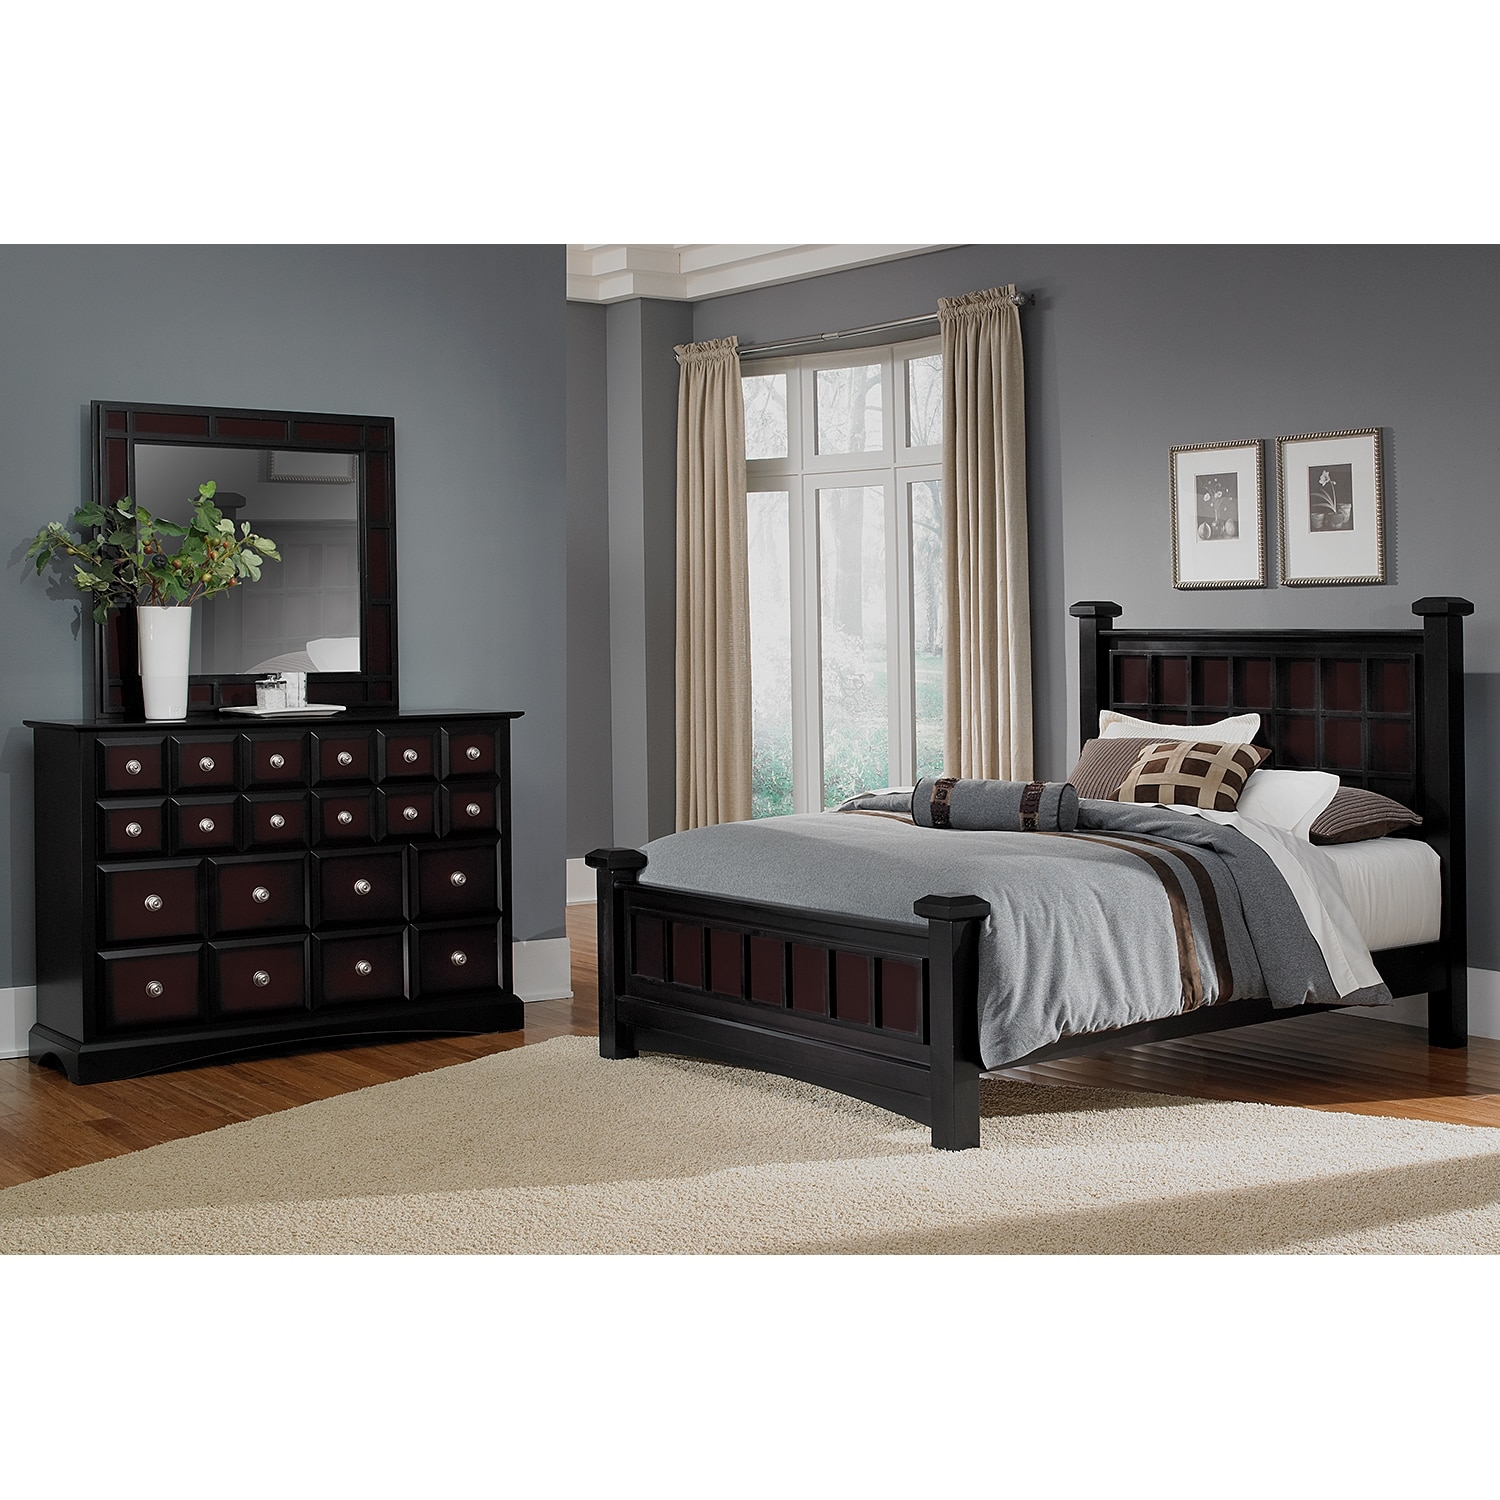 winchester 5 piece king bedroom set black and burnished merlot value city furniture. Black Bedroom Furniture Sets. Home Design Ideas